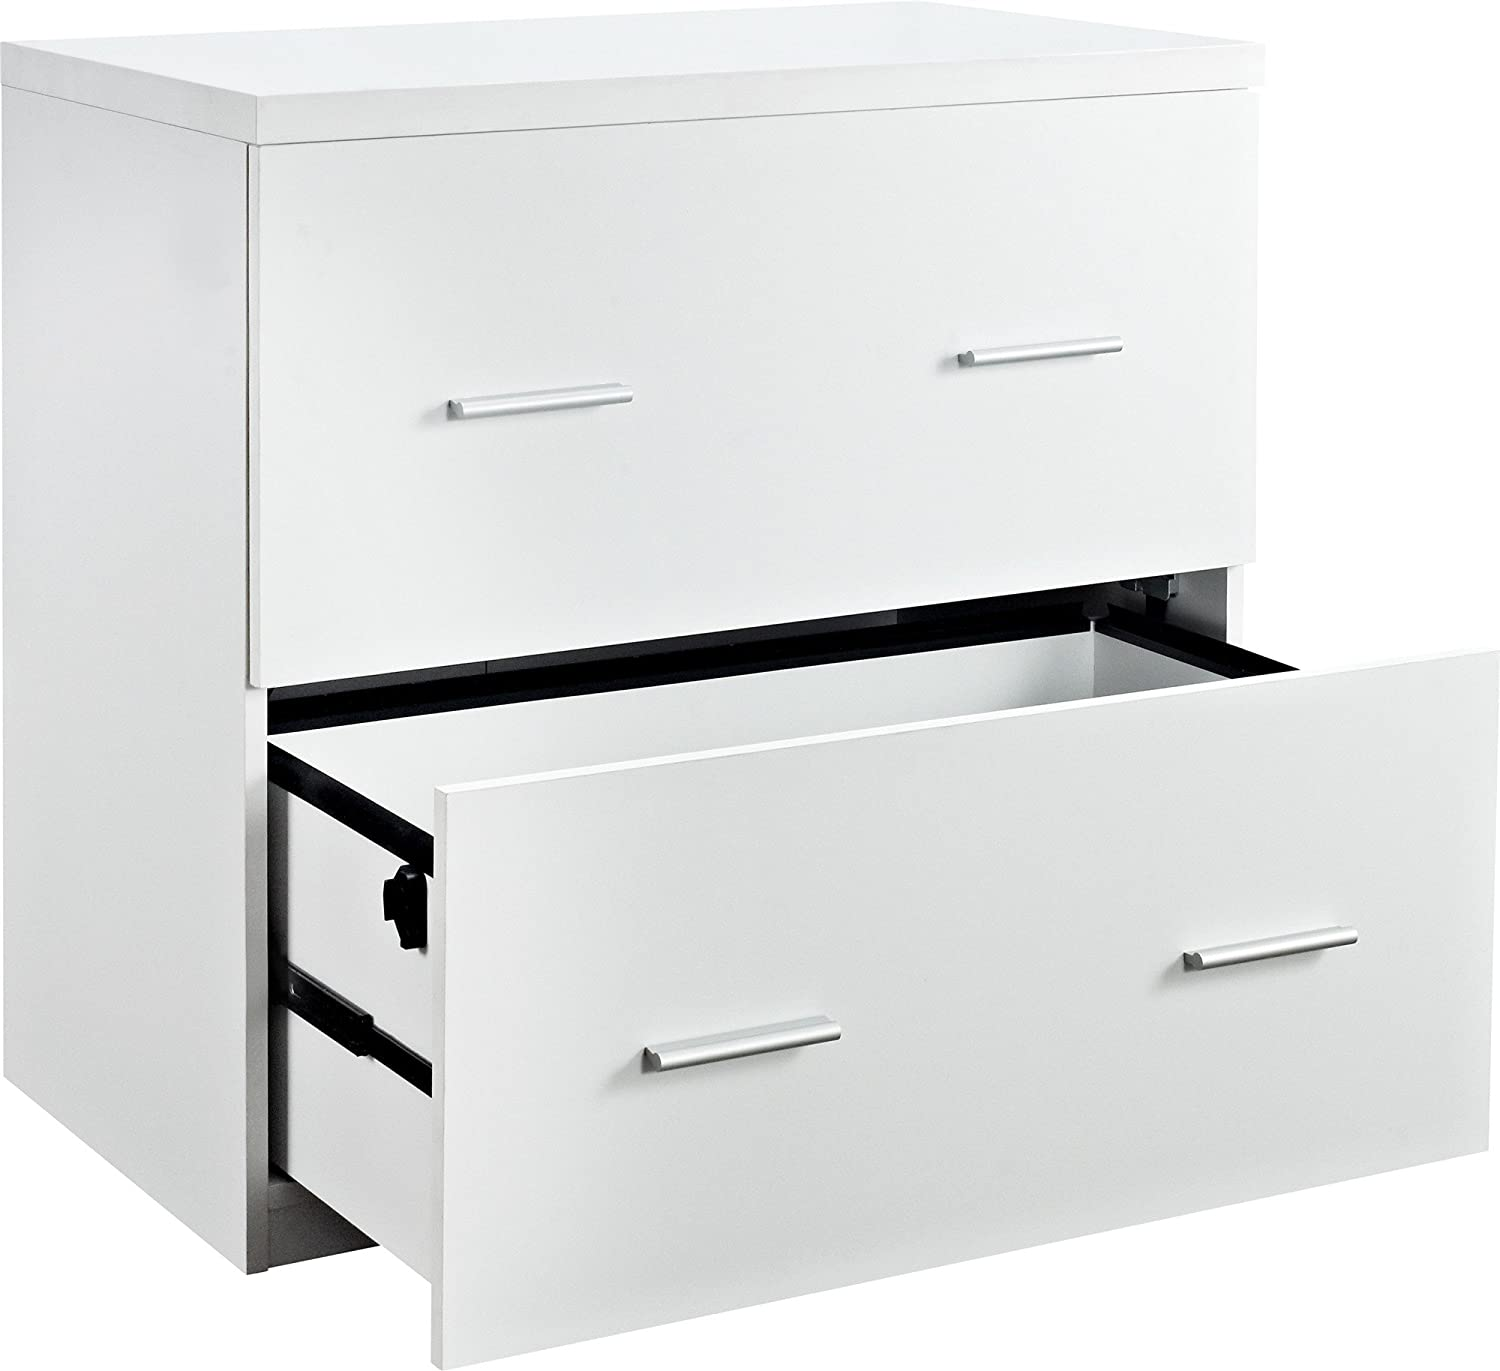 Delicieux Amazon.com: Ameriwood Home Princeton Lateral File Cabinet, White: Kitchen U0026  Dining